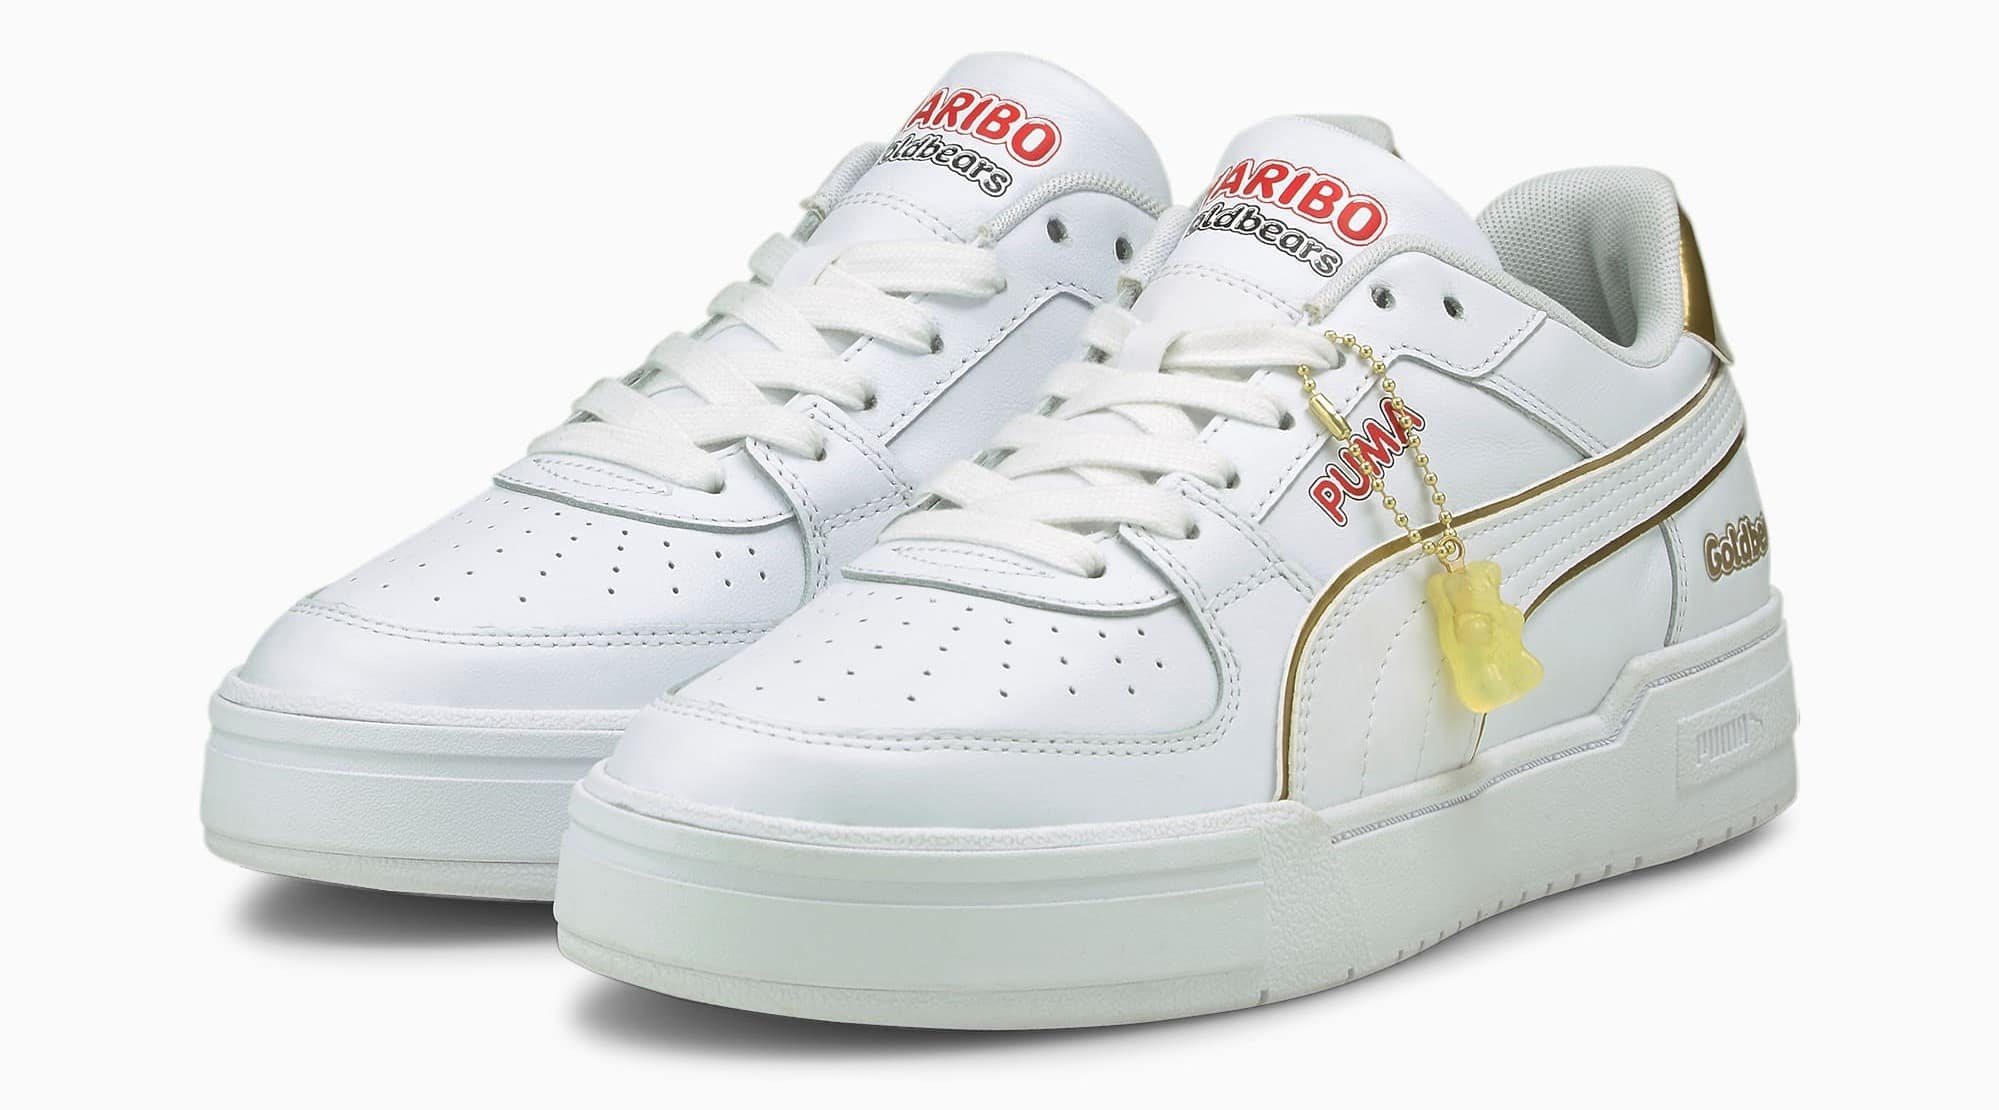 The Puma x Haribo collection is out now 18